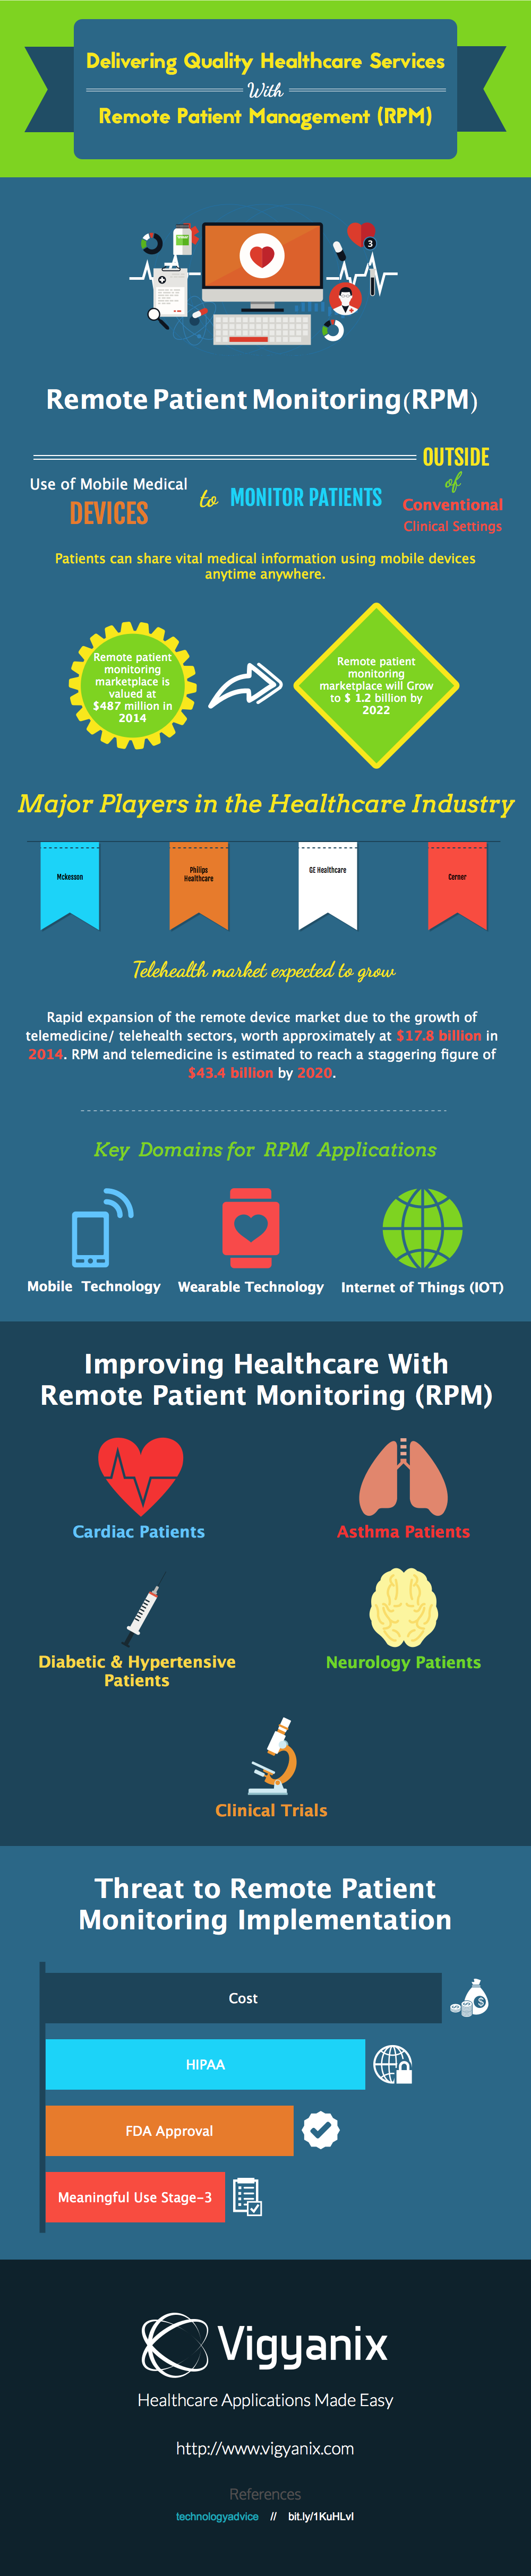 Delivering Quality Care Through Remote Patient Monitoring